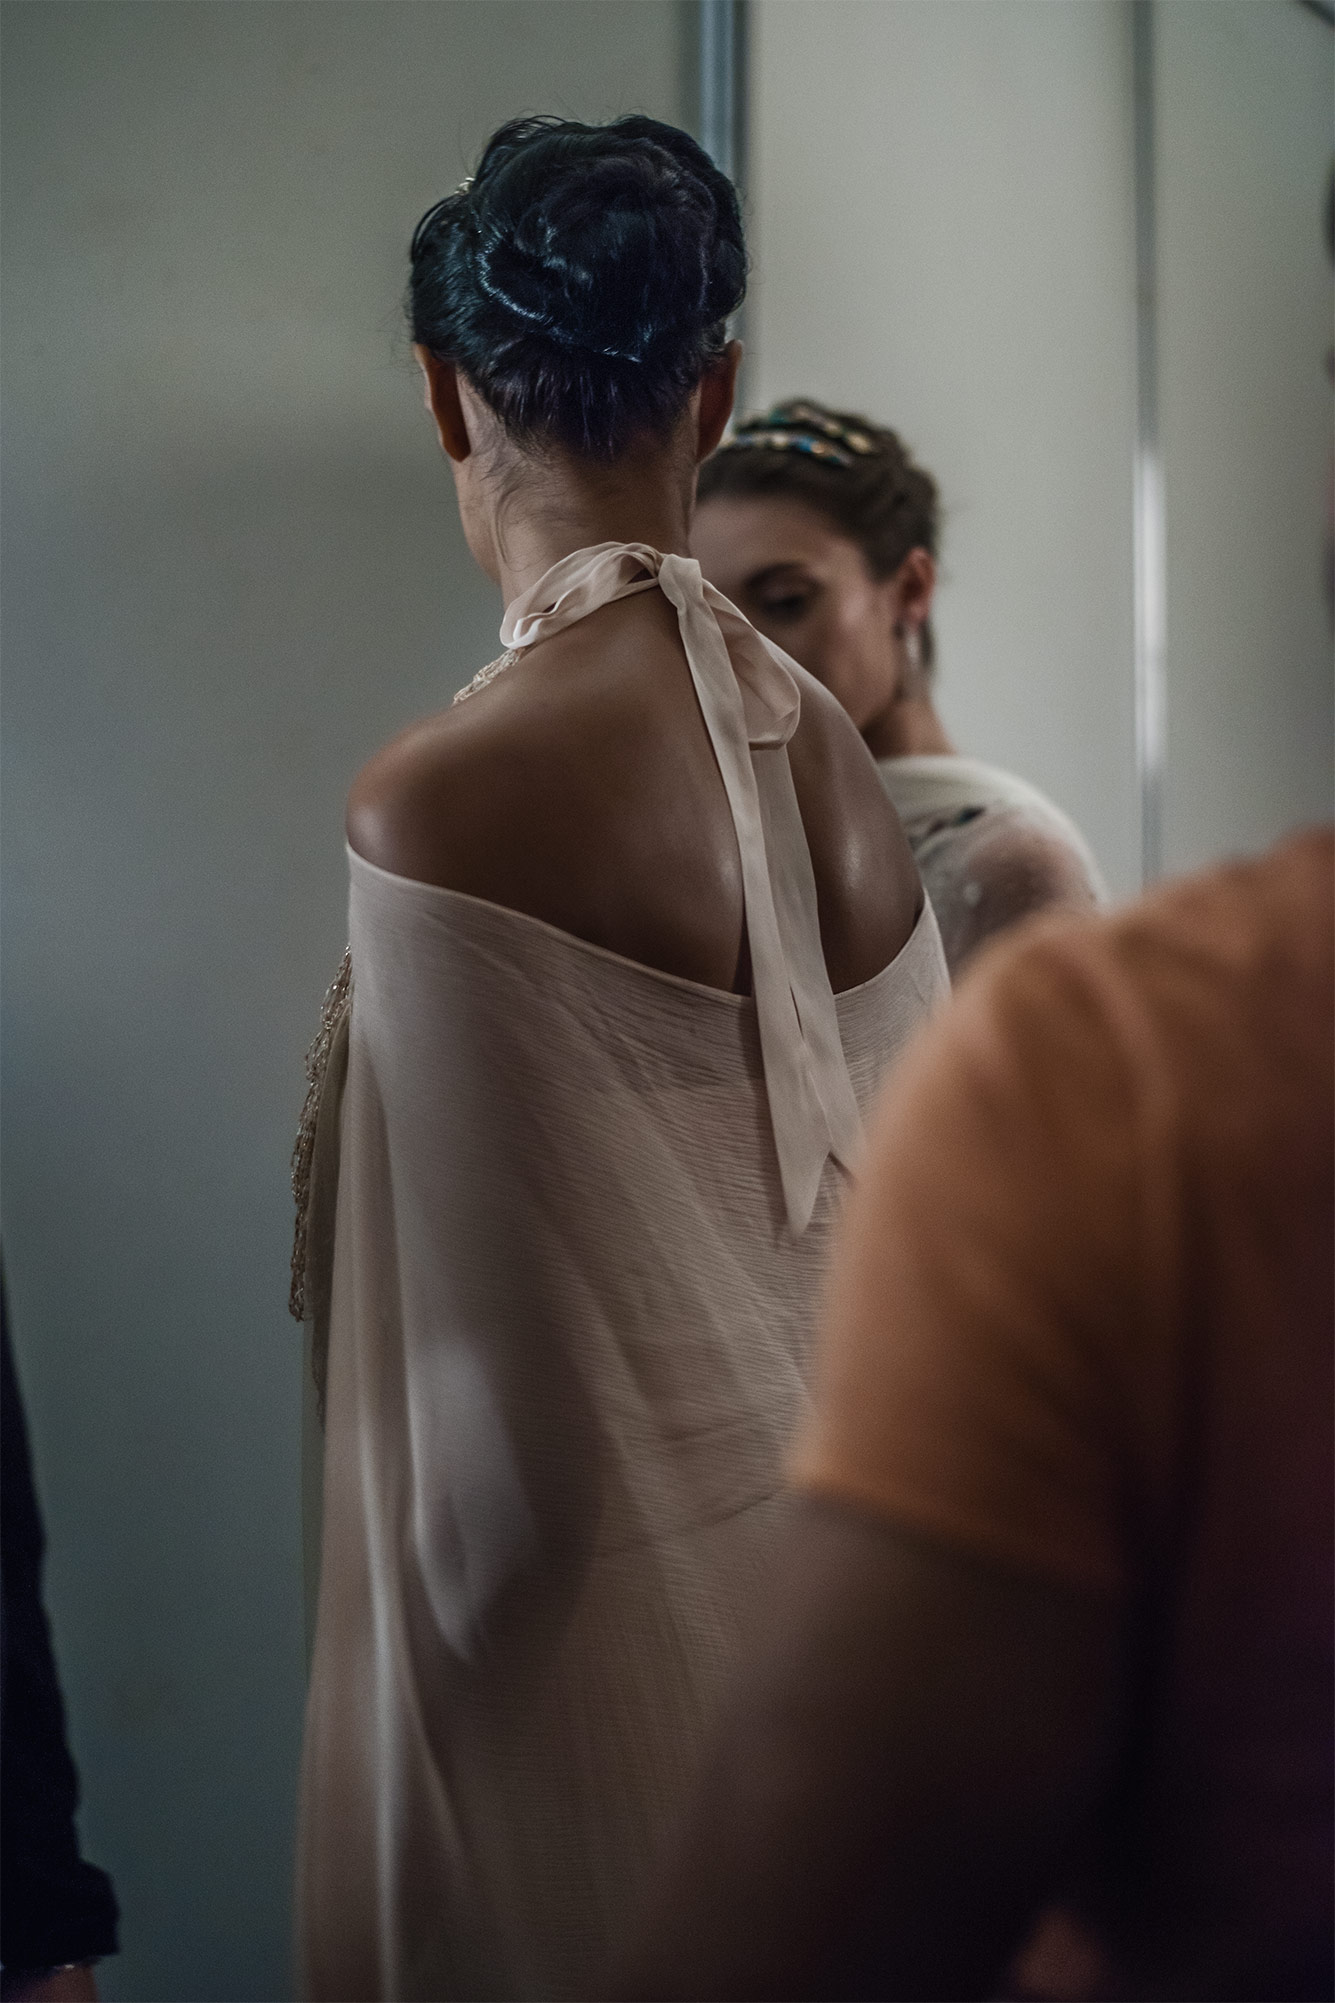 M.A.C. Backstage FDCI India Couture Week 2016 Photo by RAWKY KSH 11